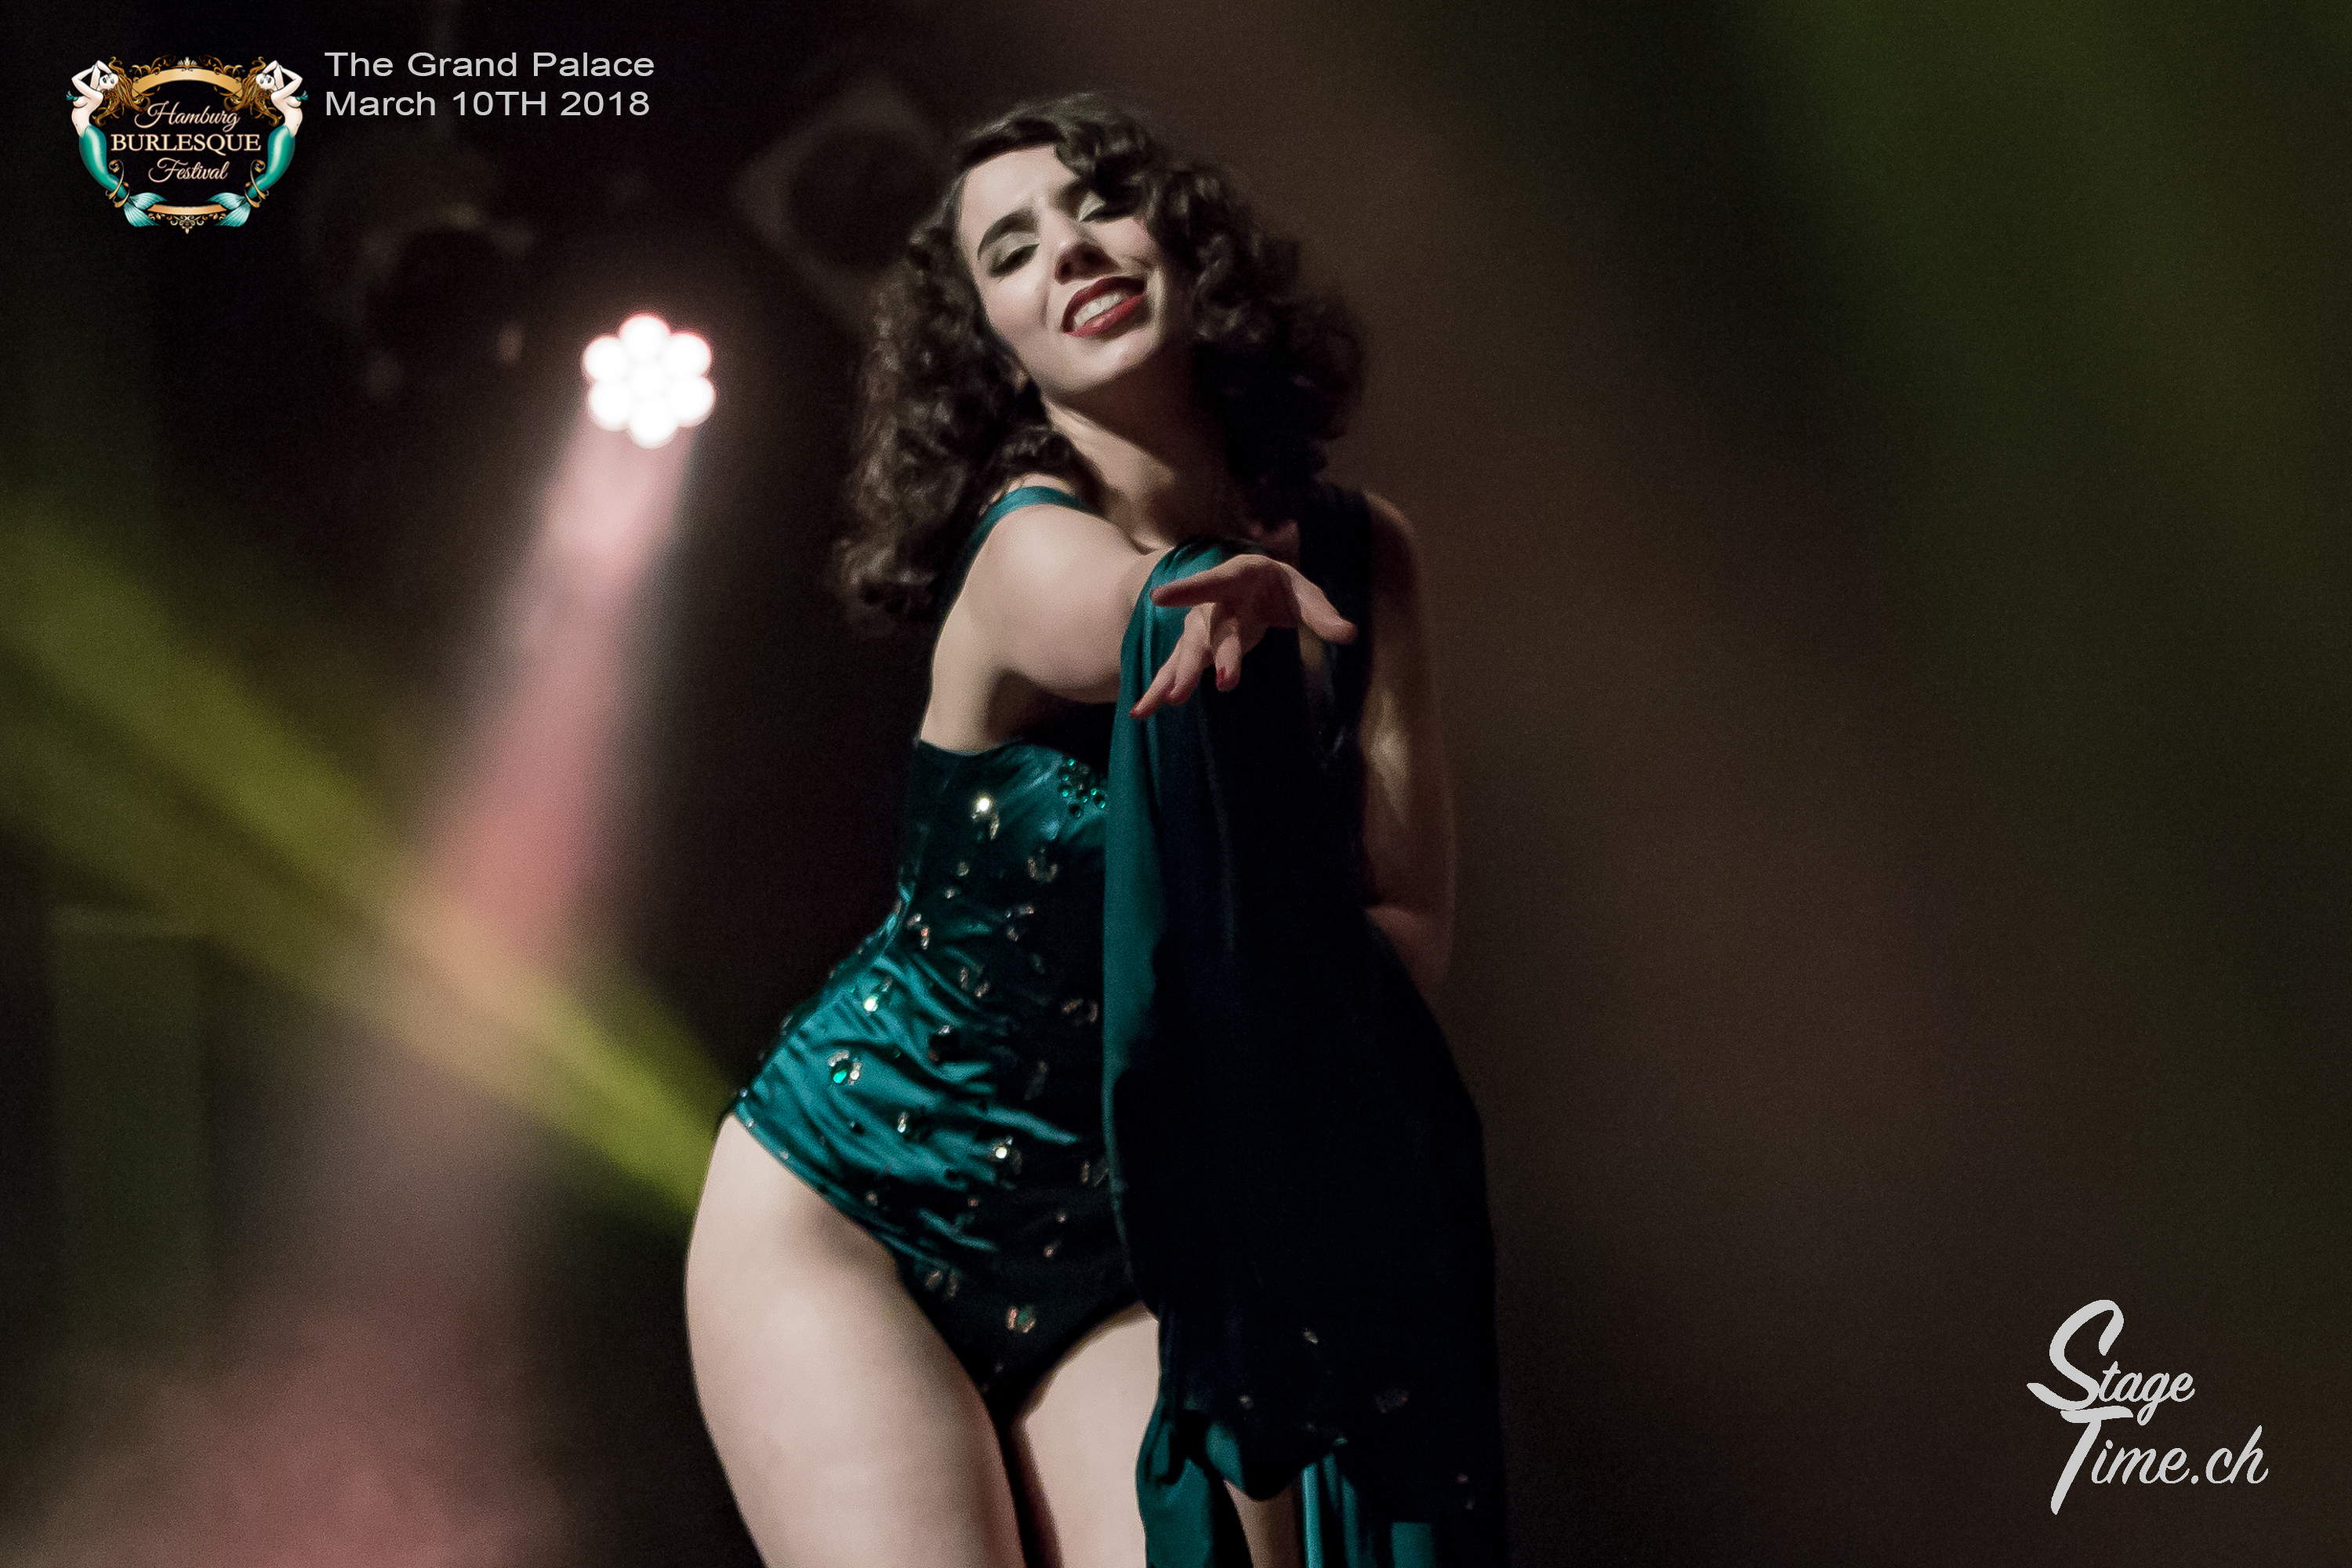 Hamburg_Burlesque_Festival_The_Grand_Palace__📷_Christoph_Gurtner_I_stagetime.ch-87